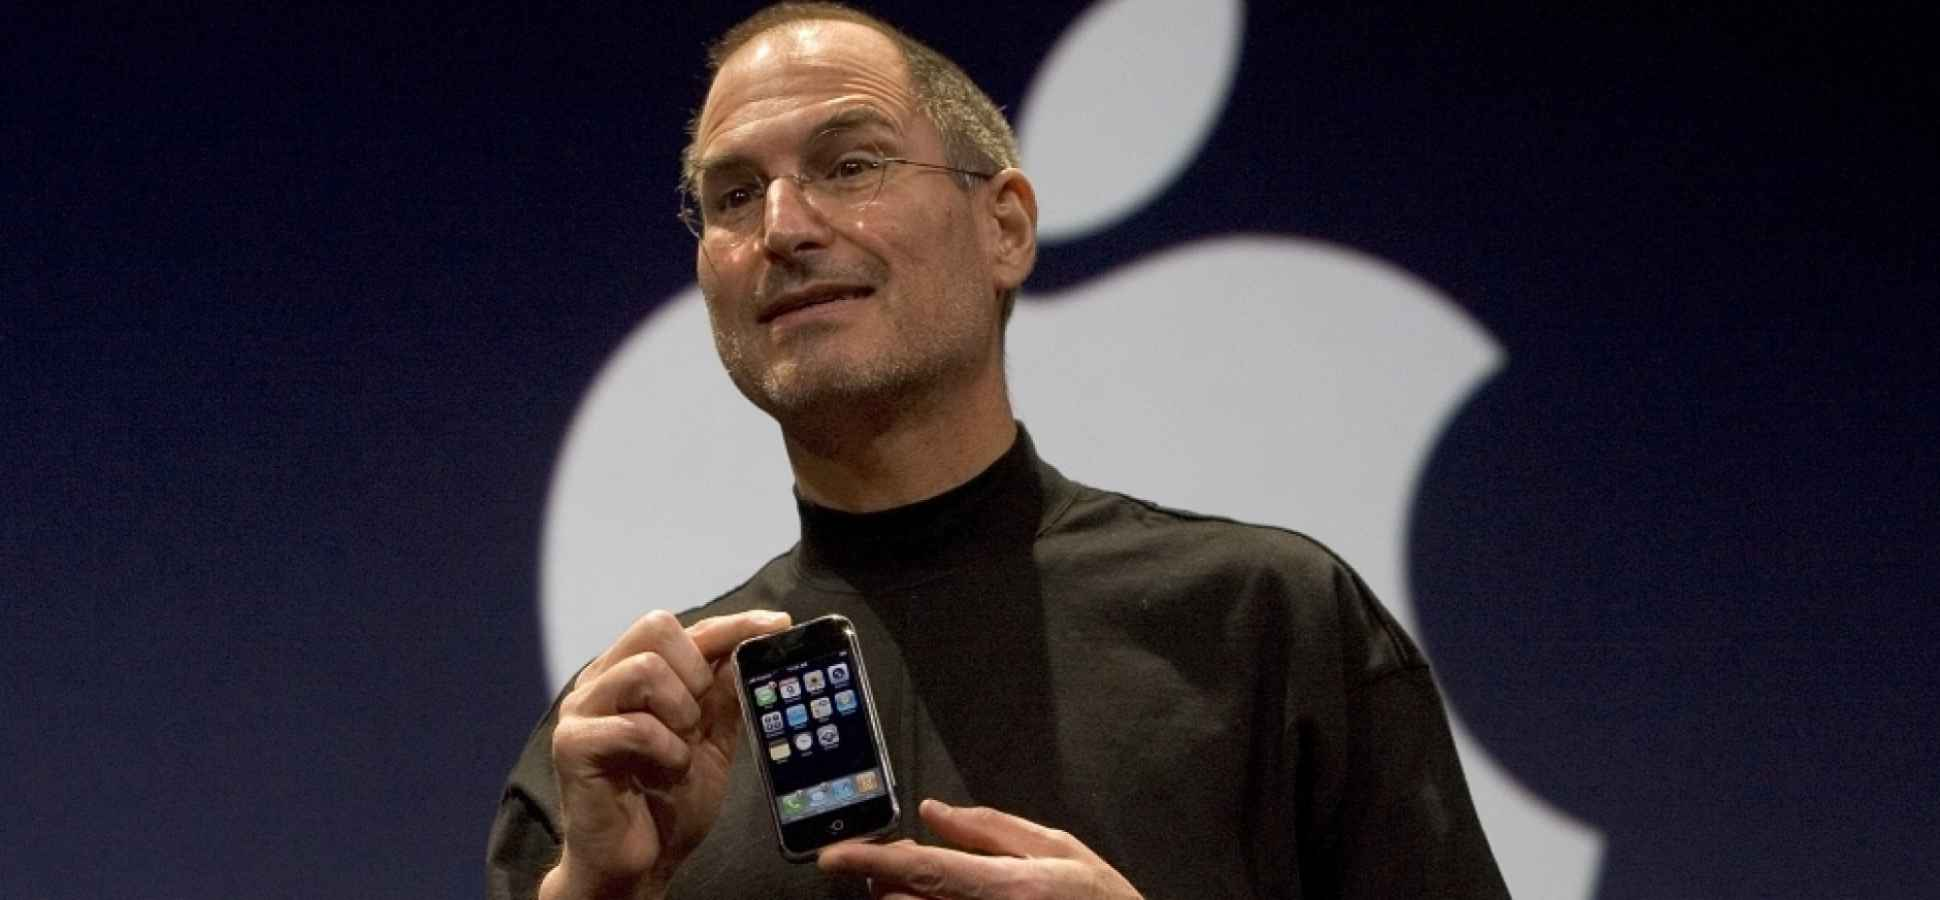 Steve Jobs Was a Master at Looking Into the Future: You Can Be Too